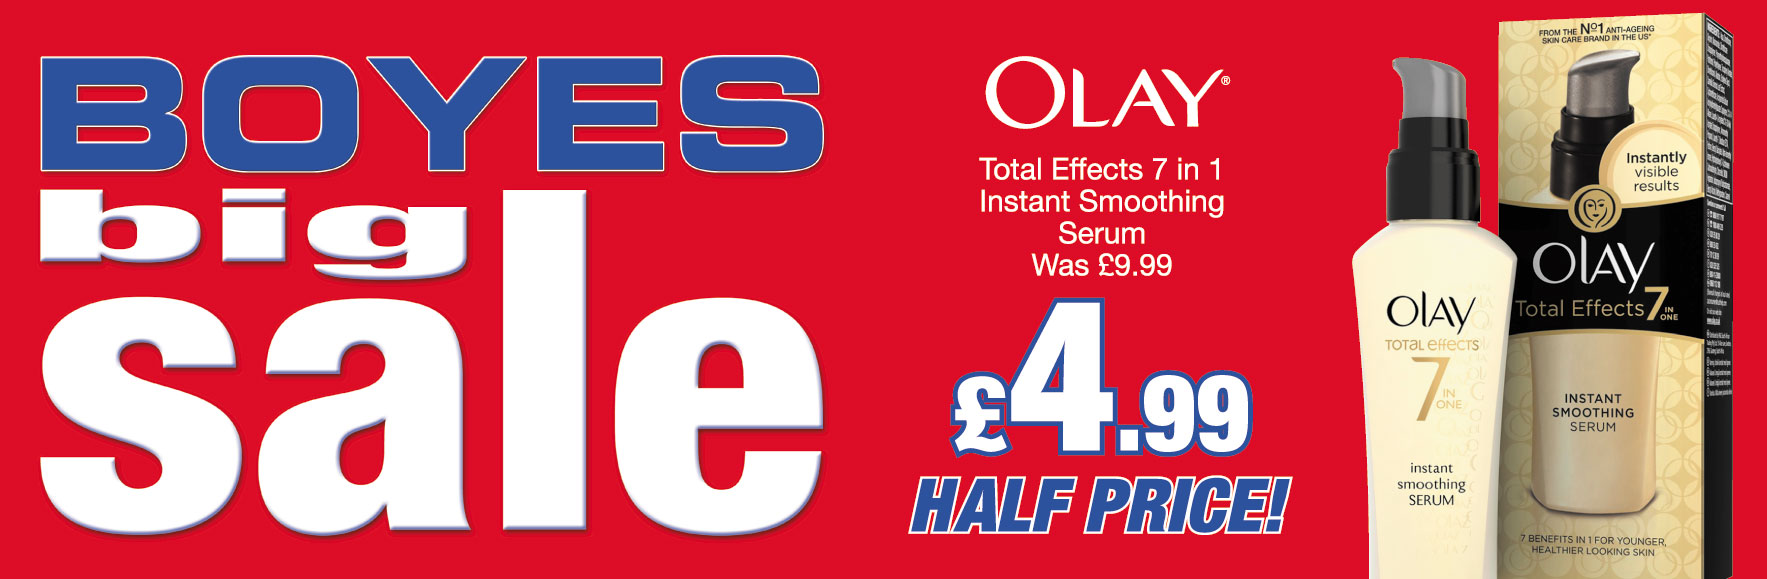 Olay Total Effects 7 in 1 Instant Smoothing Serum Was £9.99 ONLY £4.99